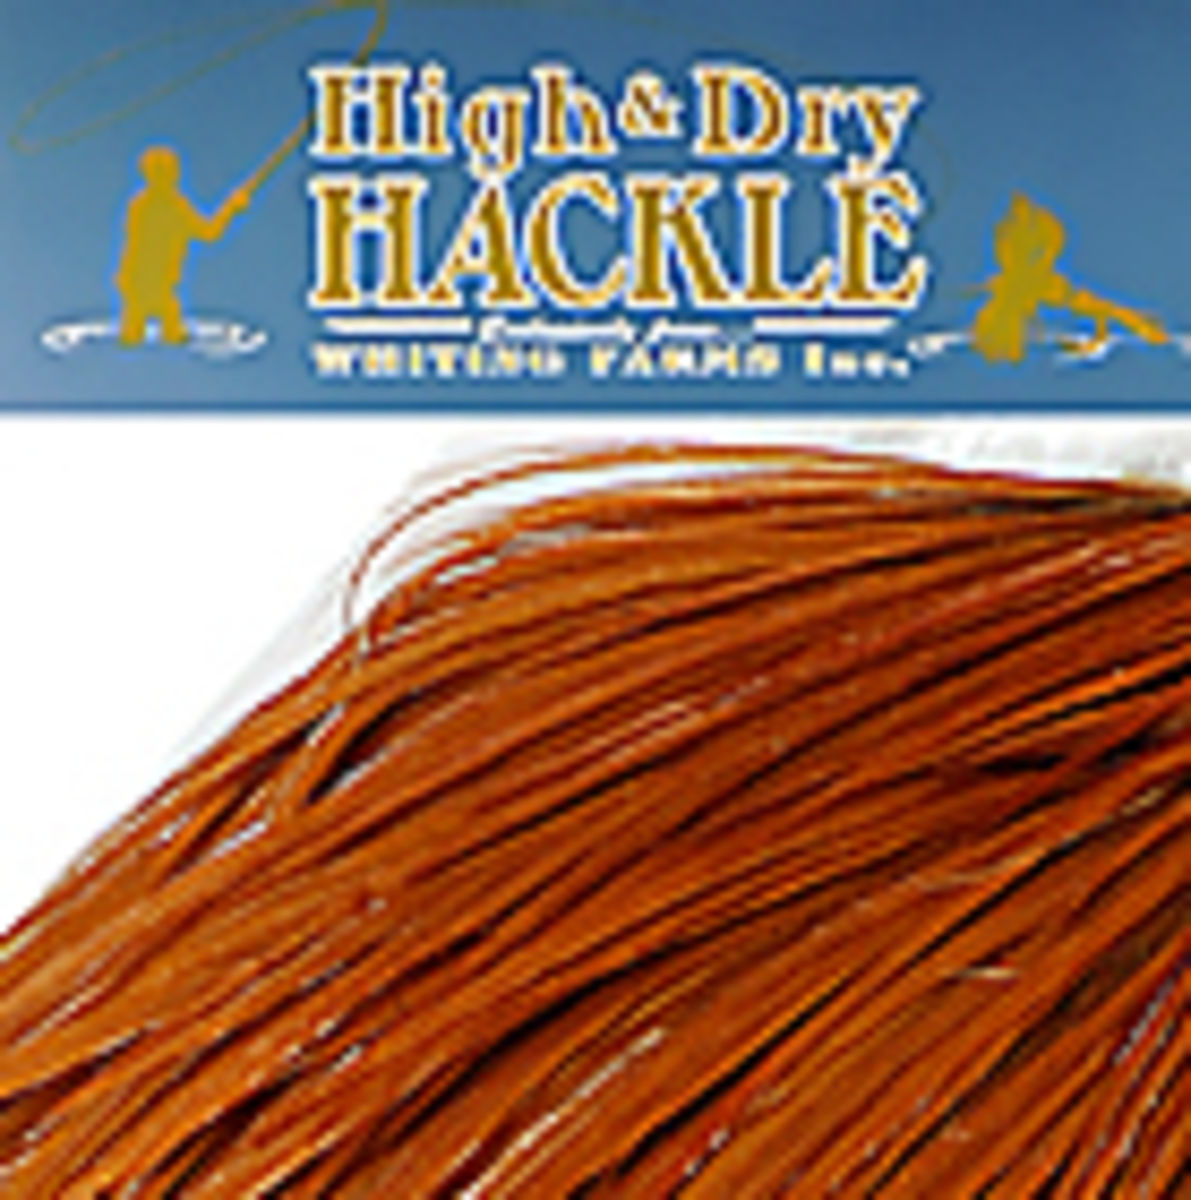 voir Whiting High Dry Hackle